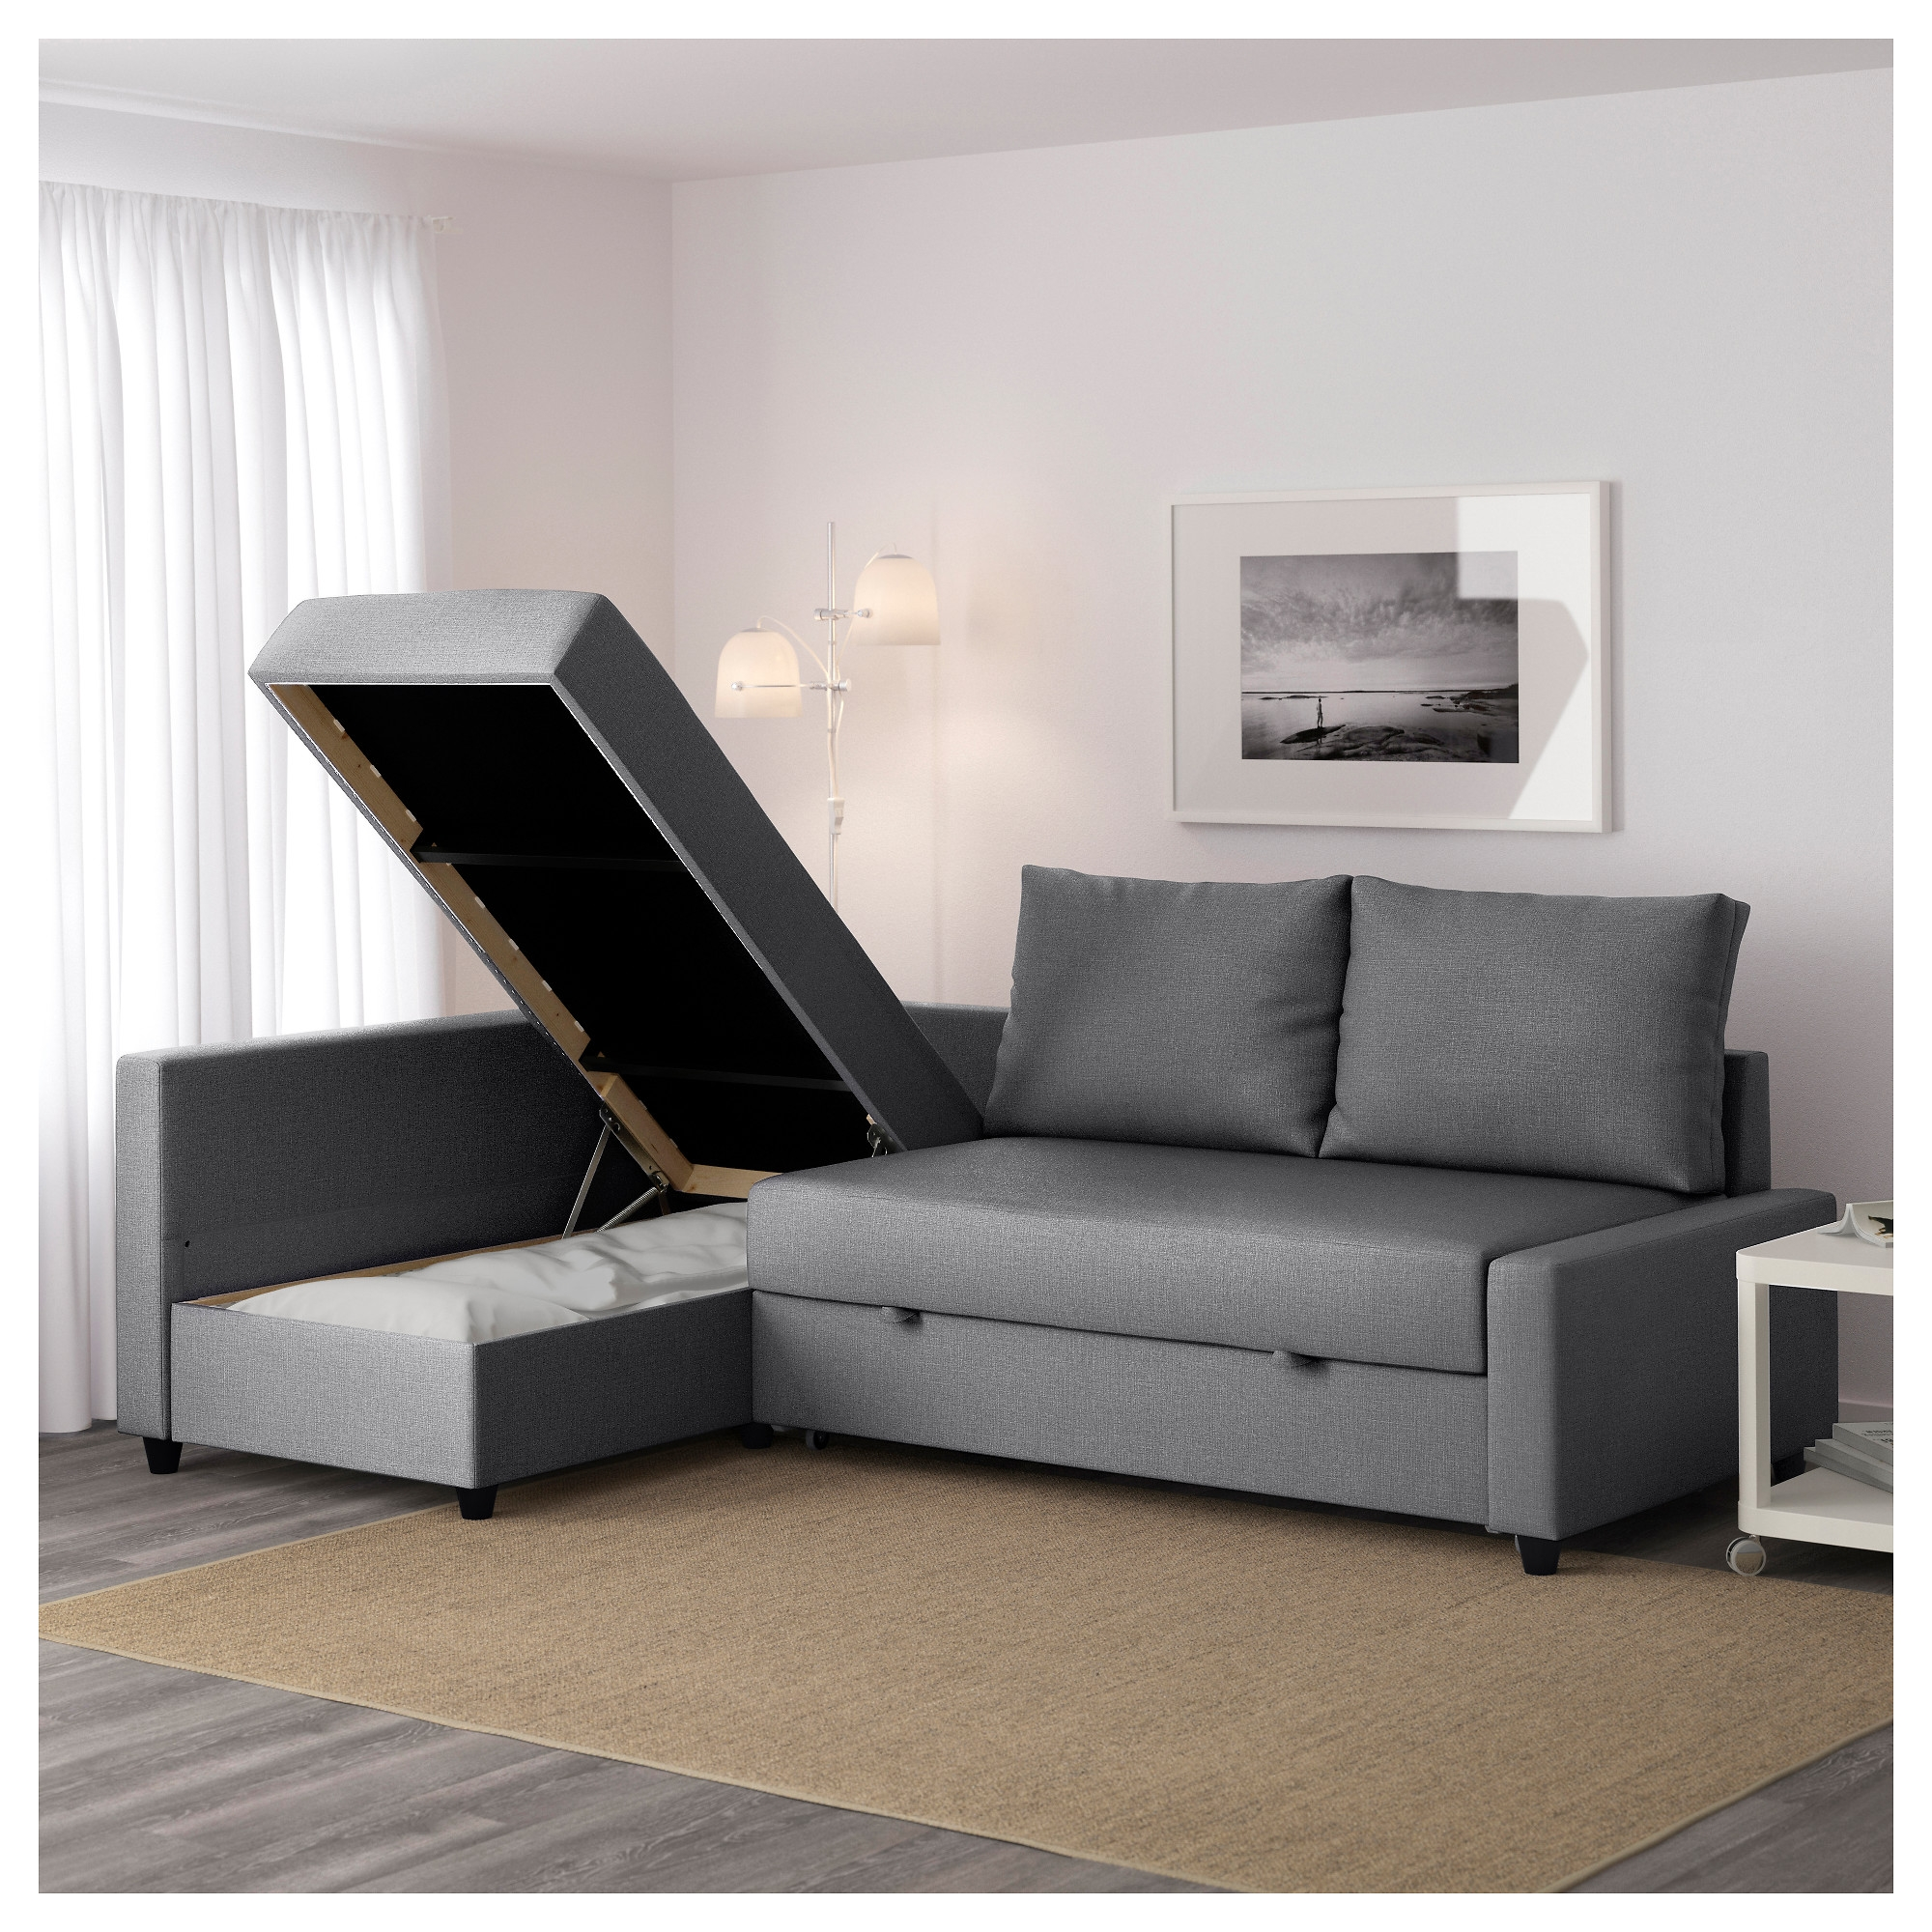 Friheten Corner Sofa Bed With Storage Skiftebo Dark Grey Ikea Inside Corner Couch Bed (View 7 of 15)